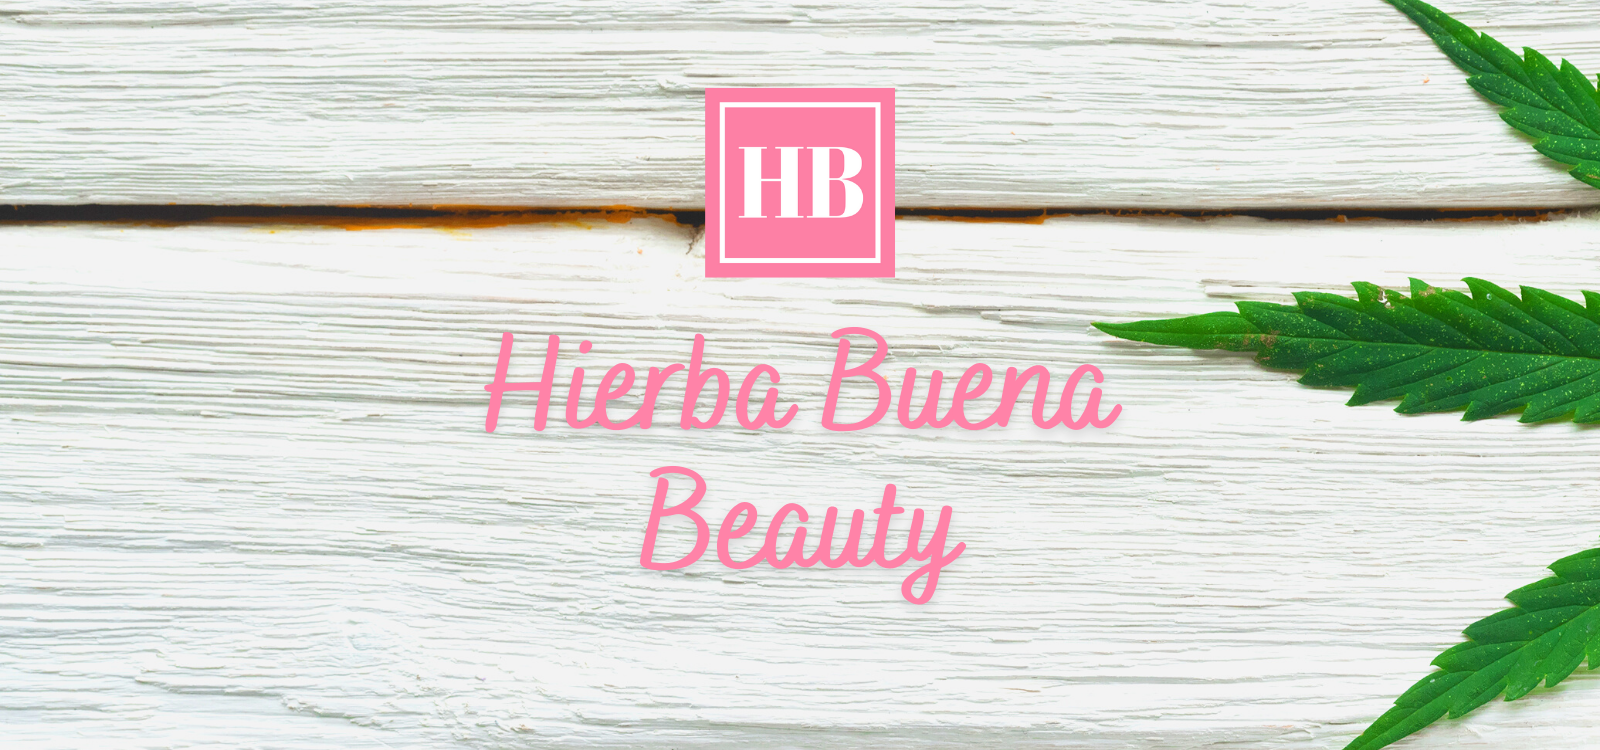 beauty-personal-care image banner